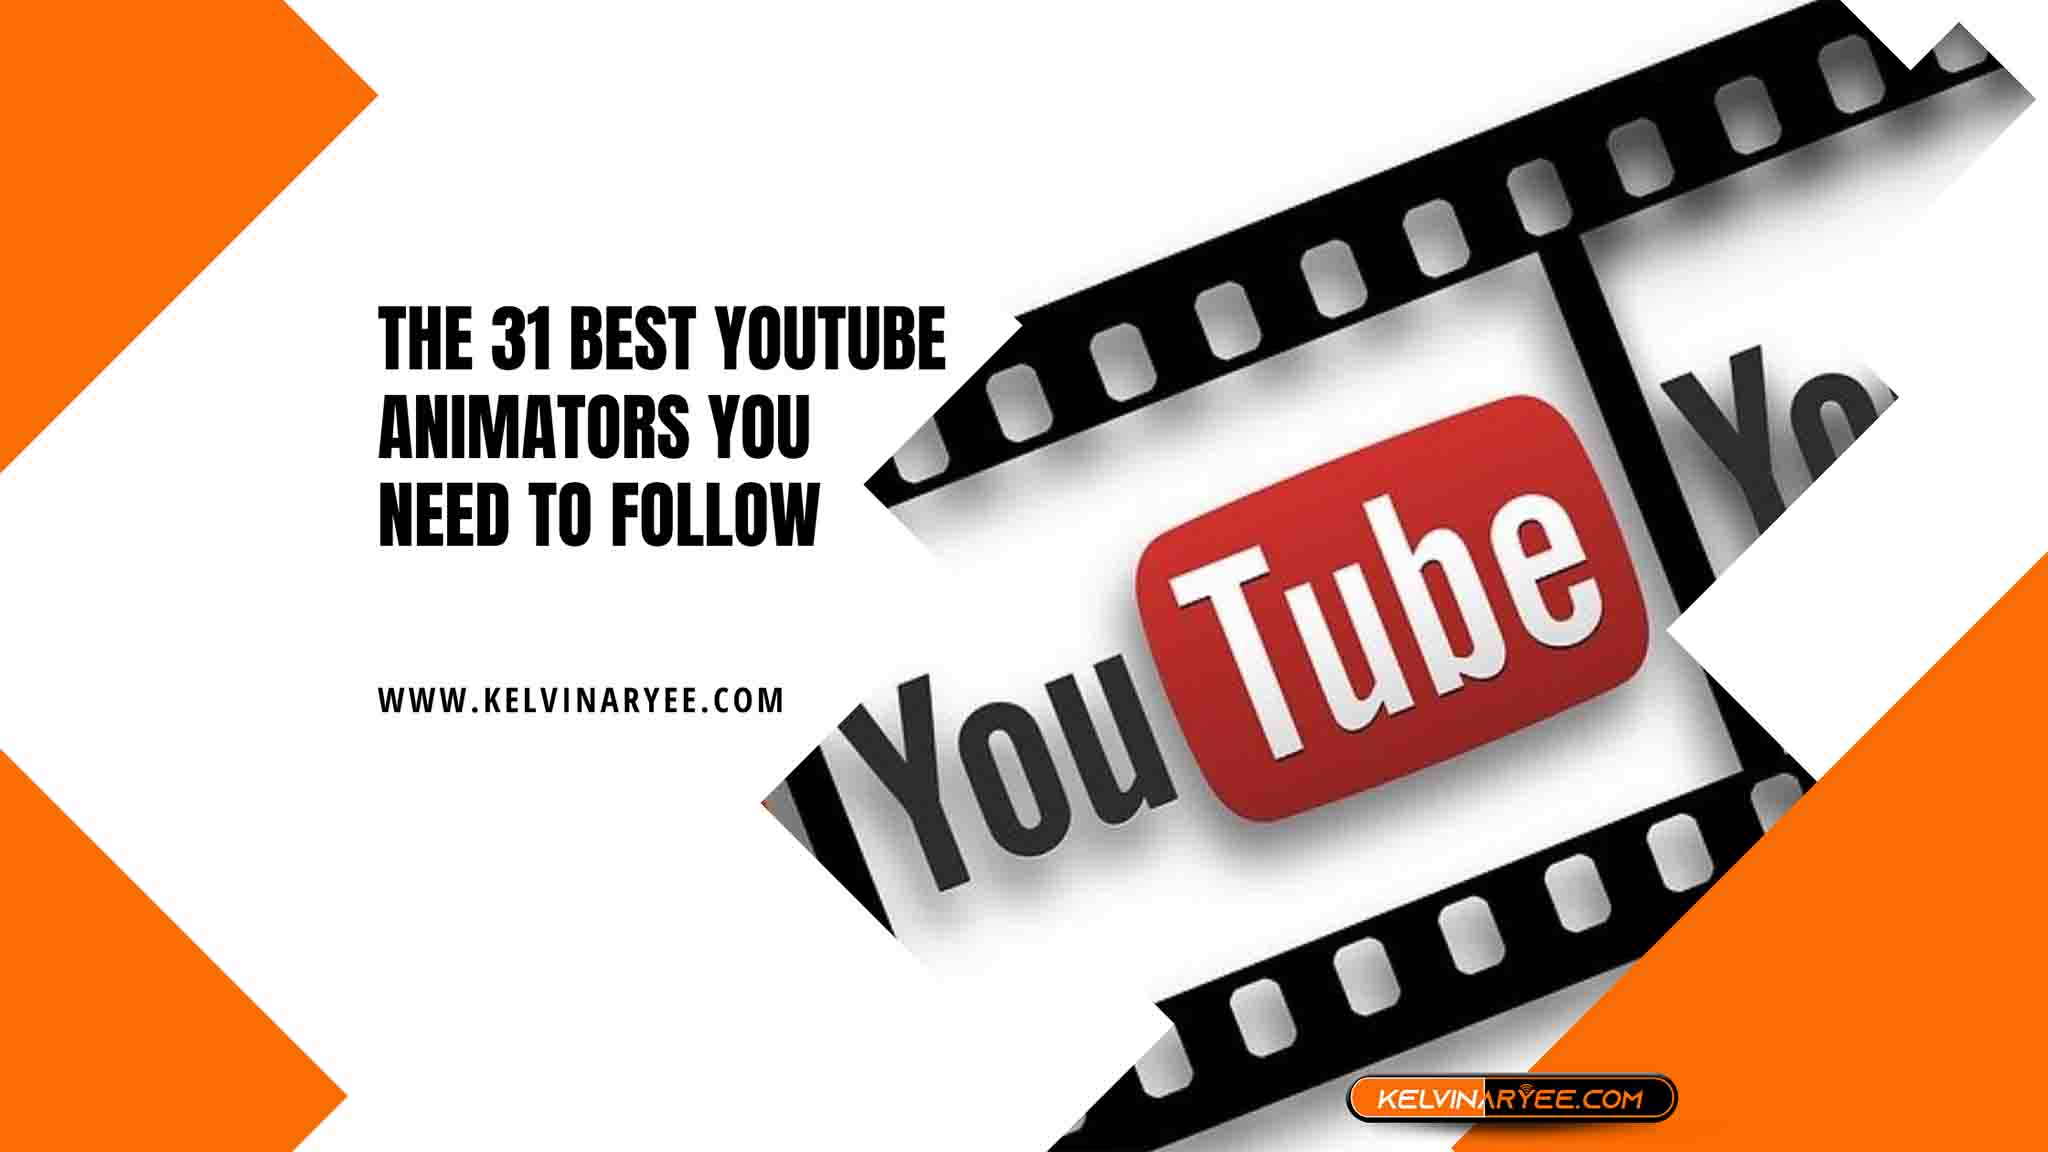 The 31 Best YouTube Animators You Need to Follow